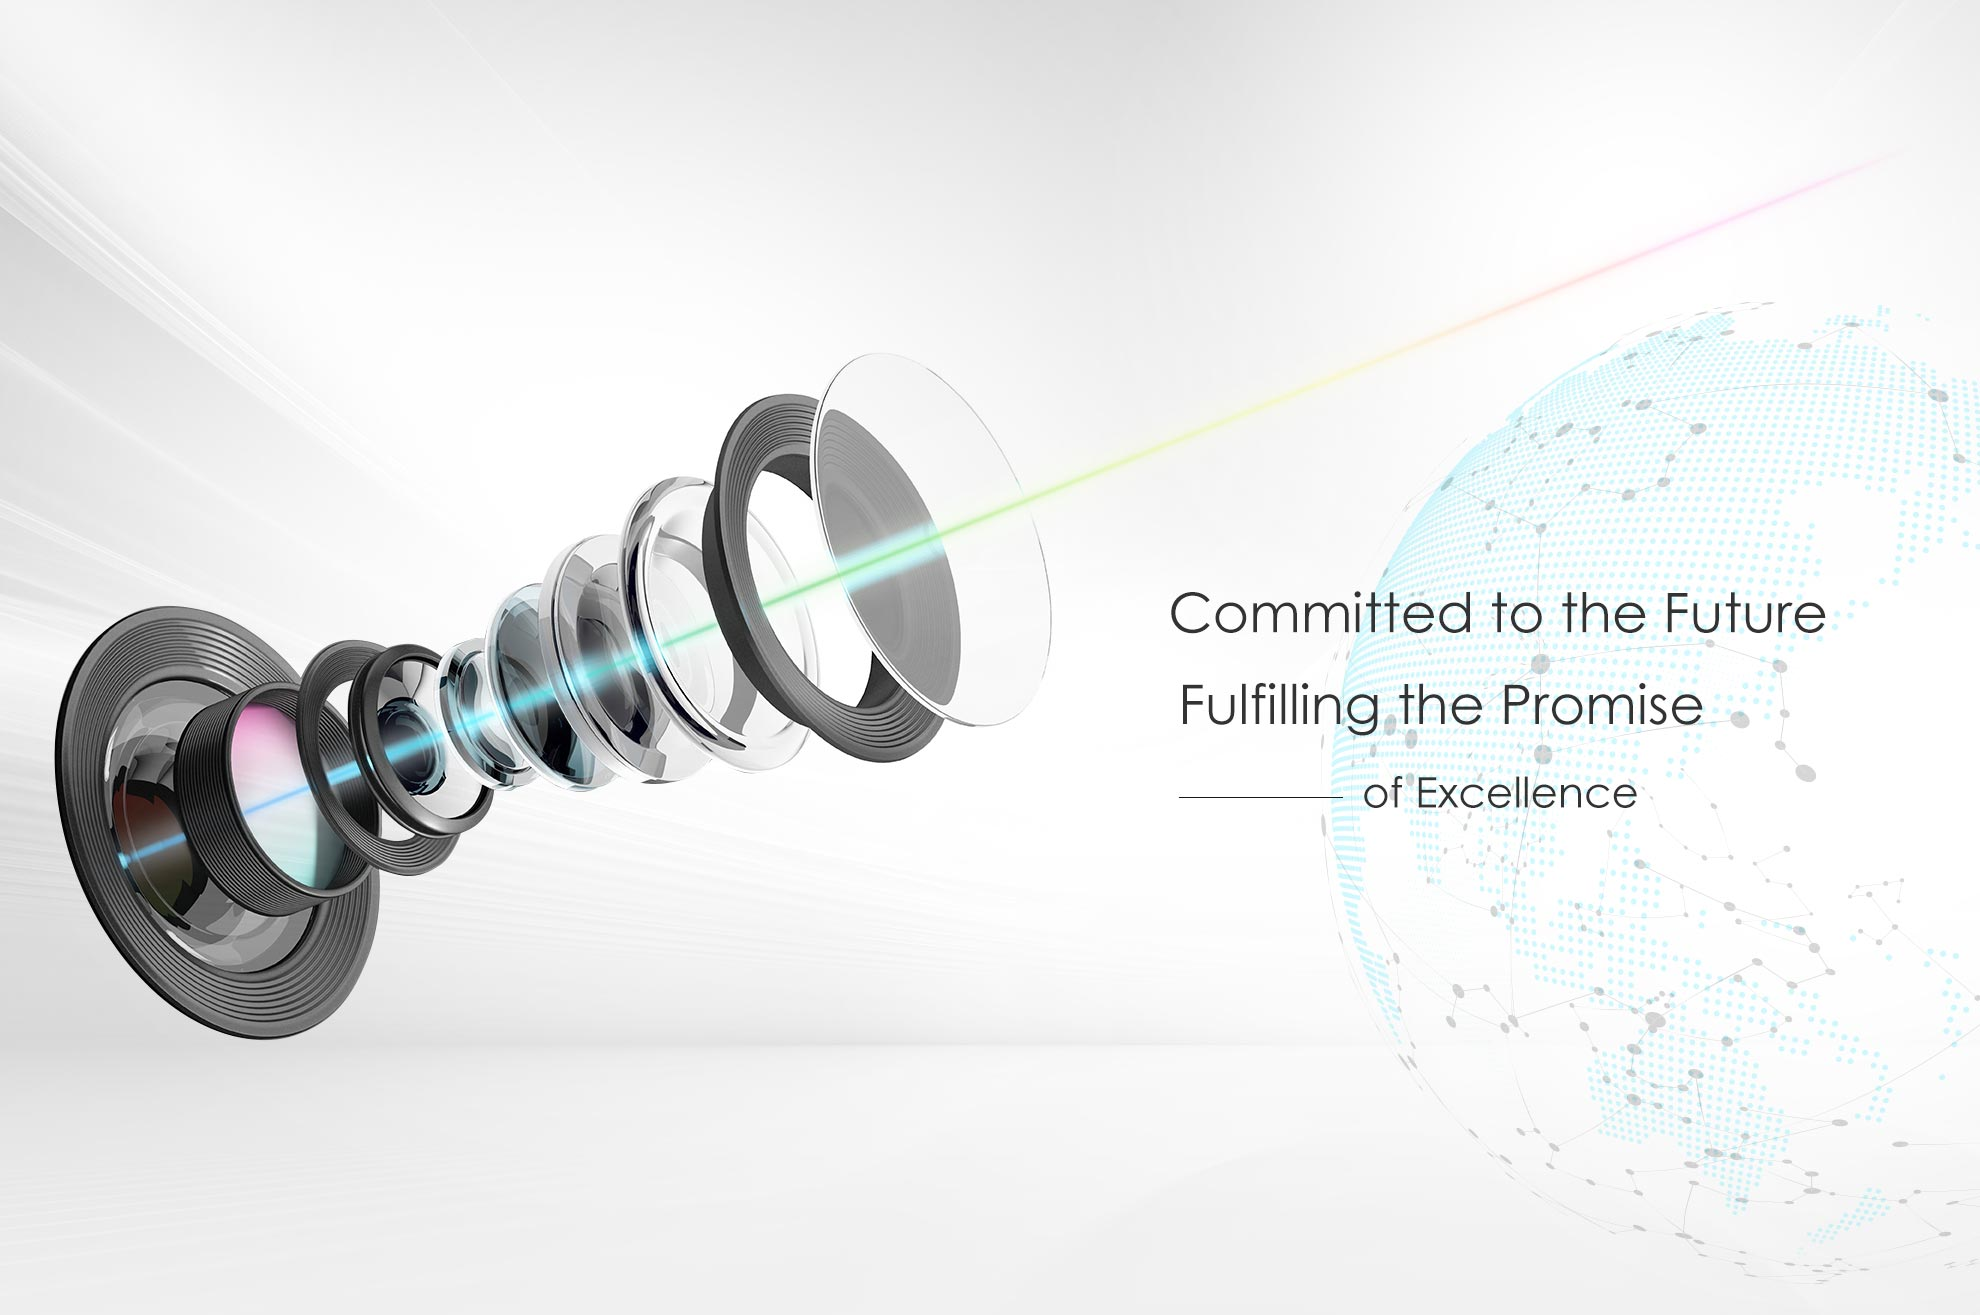 Committed to the Future, Fulfilling the Promise of Excellence